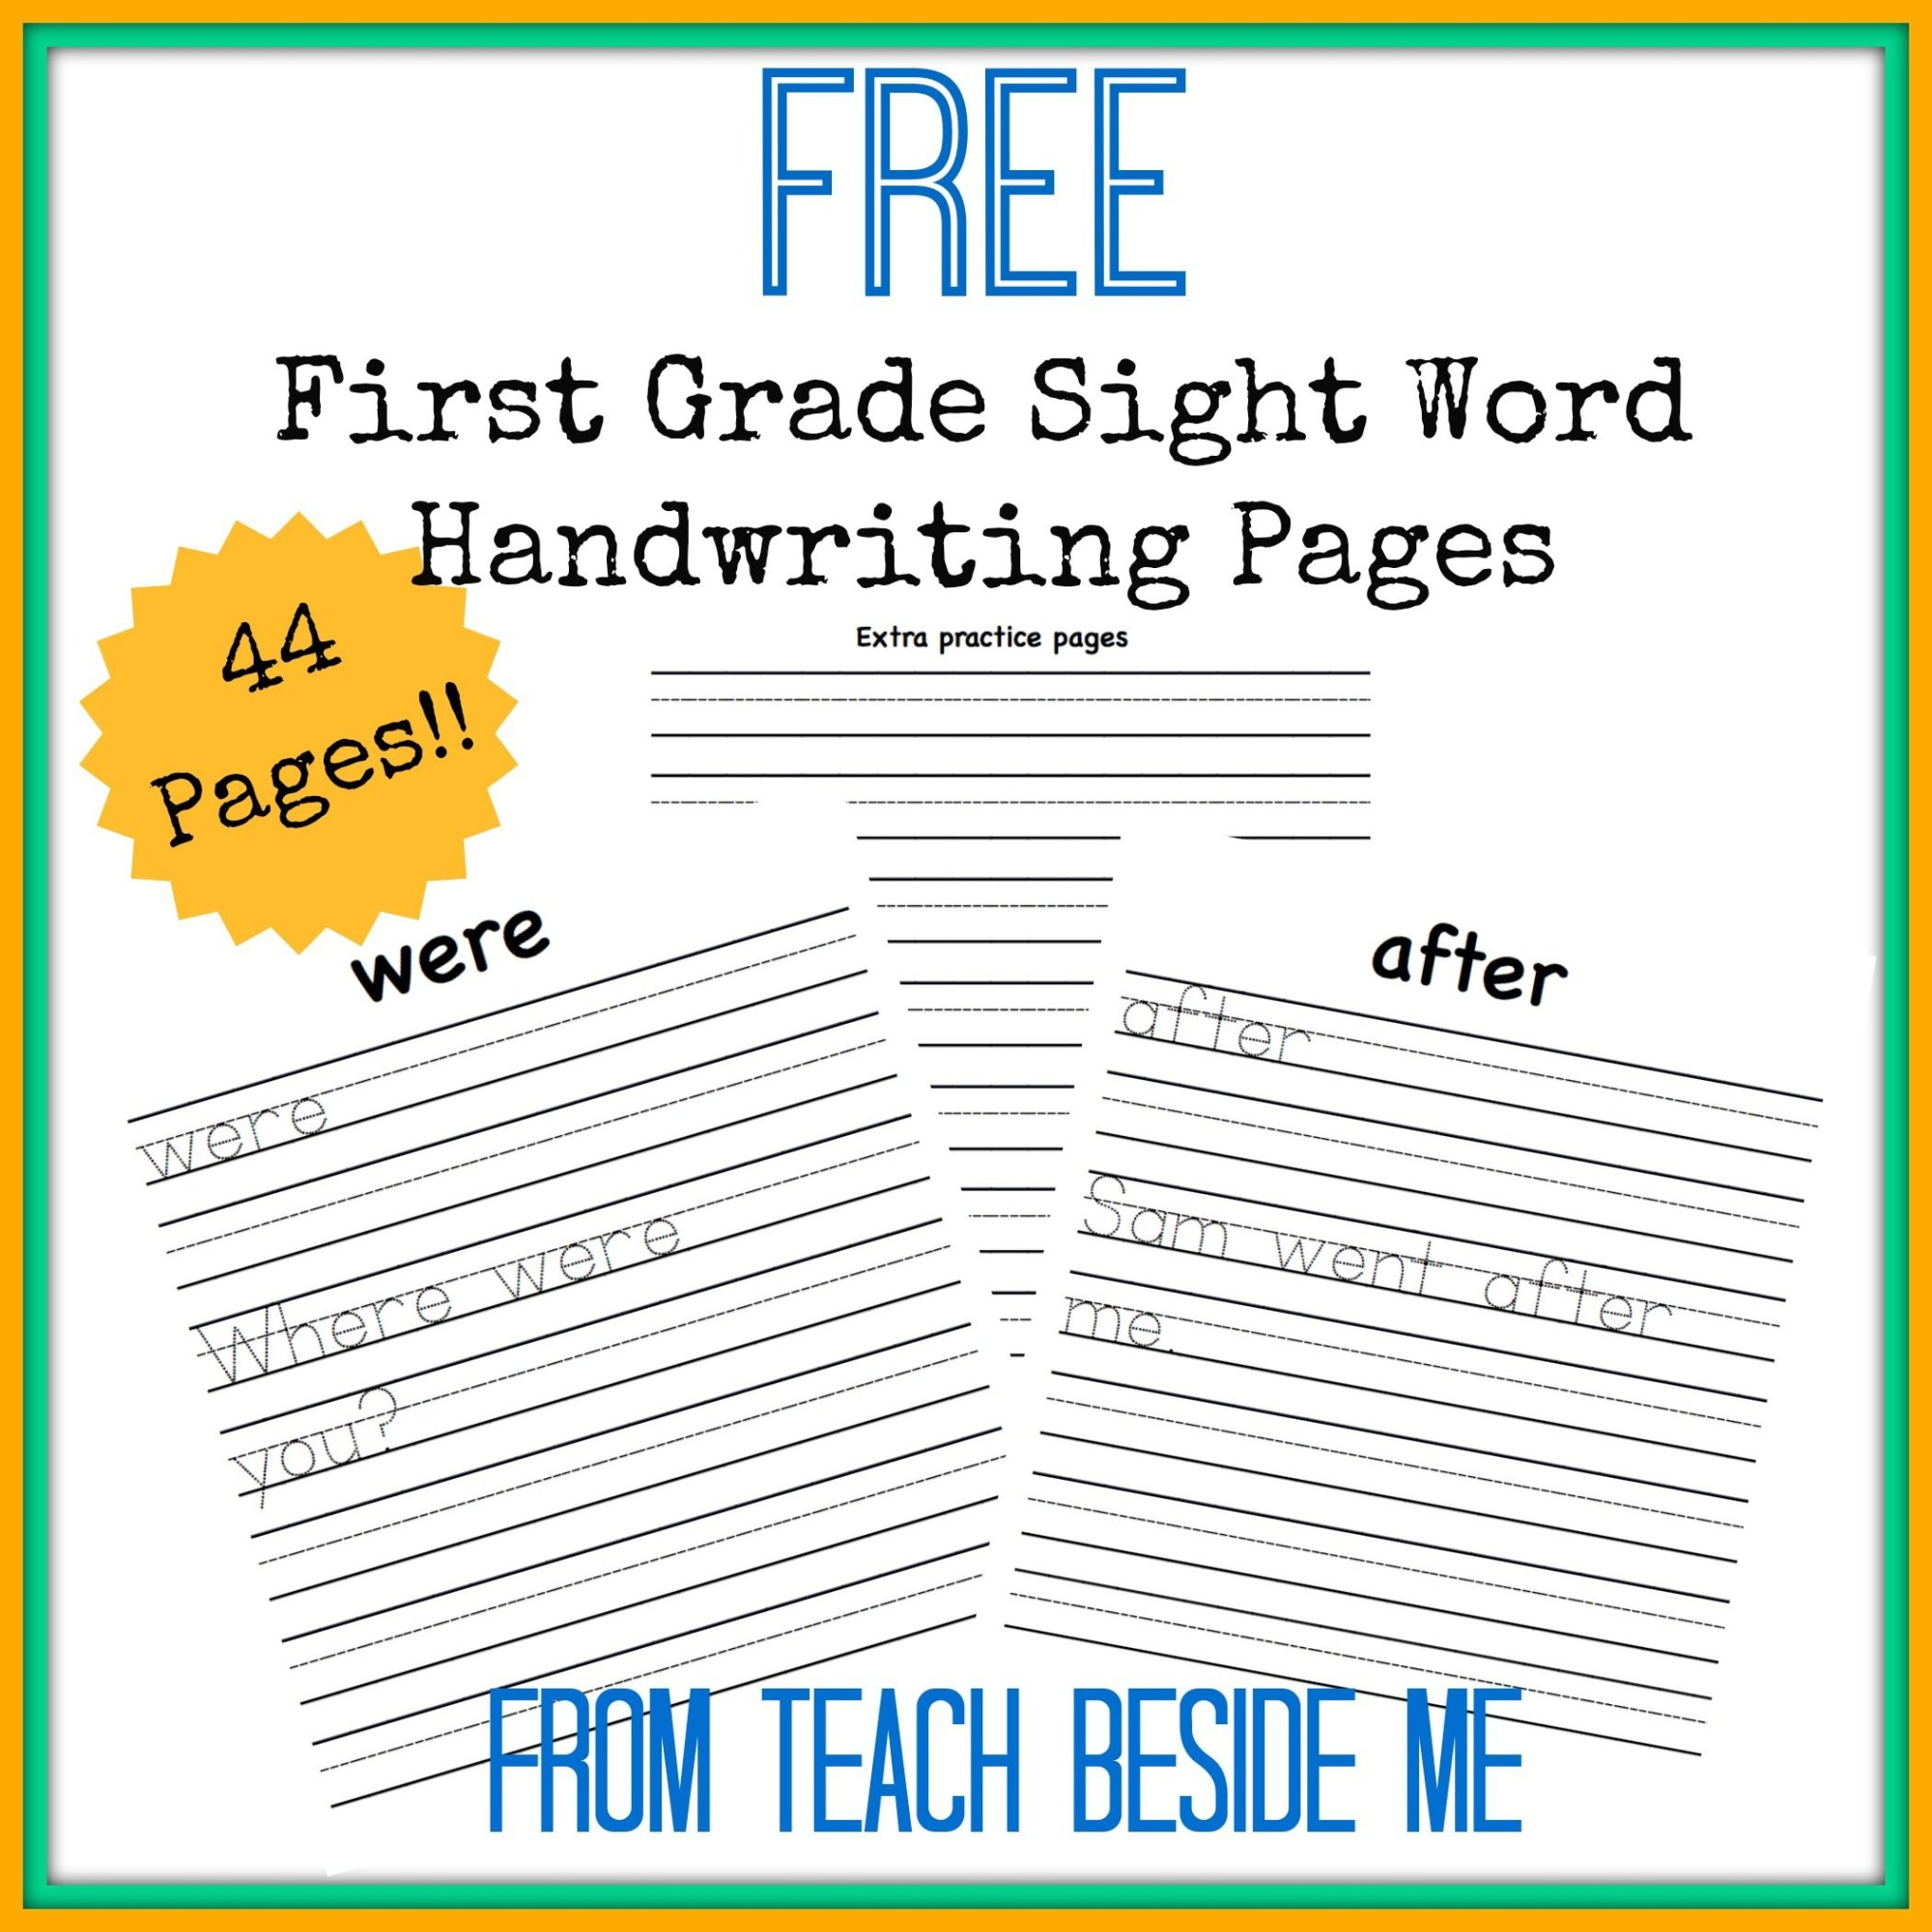 hight resolution of Sight Words 1st Grade Worksheets   Printable Worksheets and Activities for  Teachers